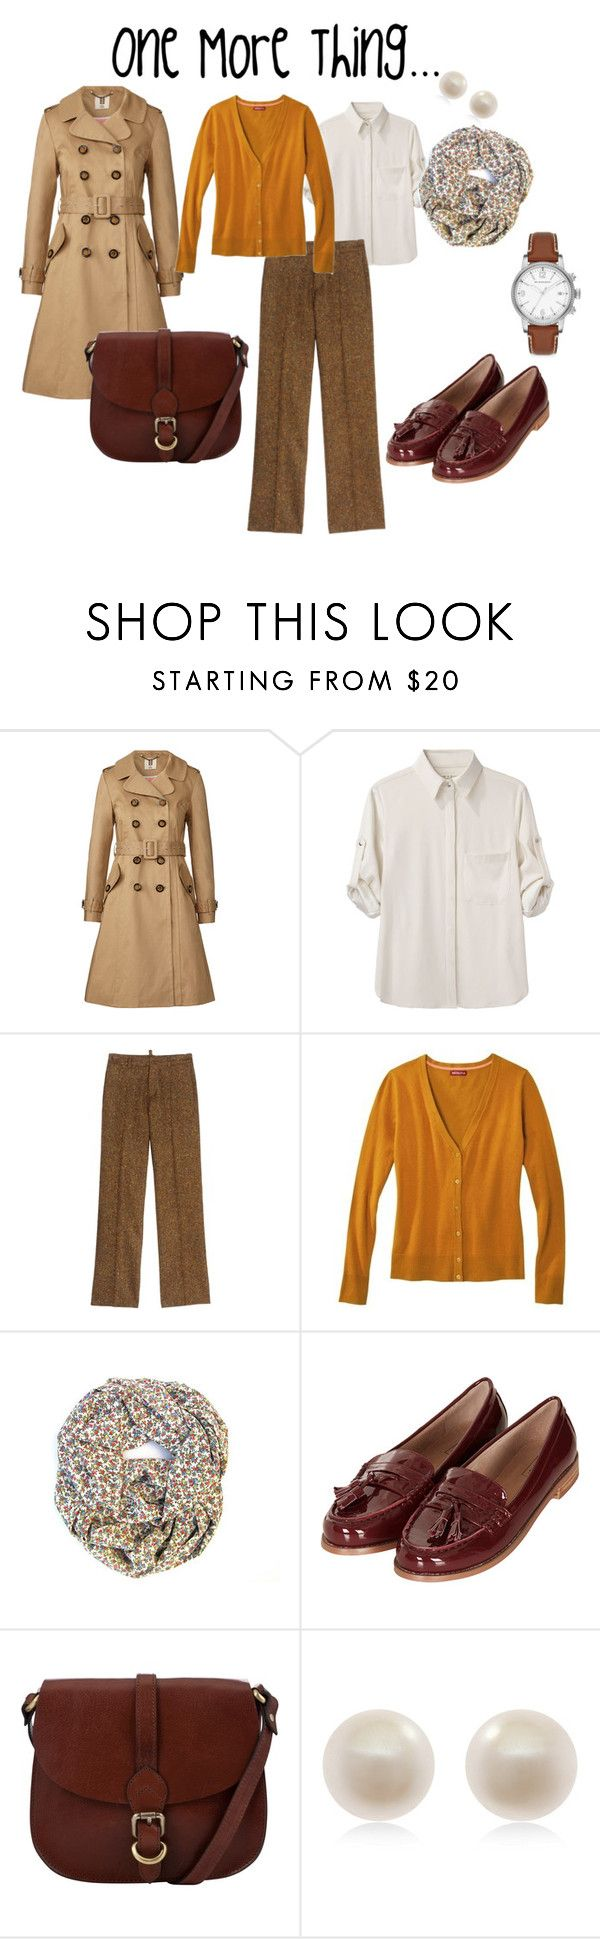 """""""Mrs. Columbo"""" by mamaskip ❤ liked on Polyvore featuring Orla Kiely, rag & bone, Dsquared2, Topshop, John Lewis, Links of London, Burberry, women's clothing, women and female"""